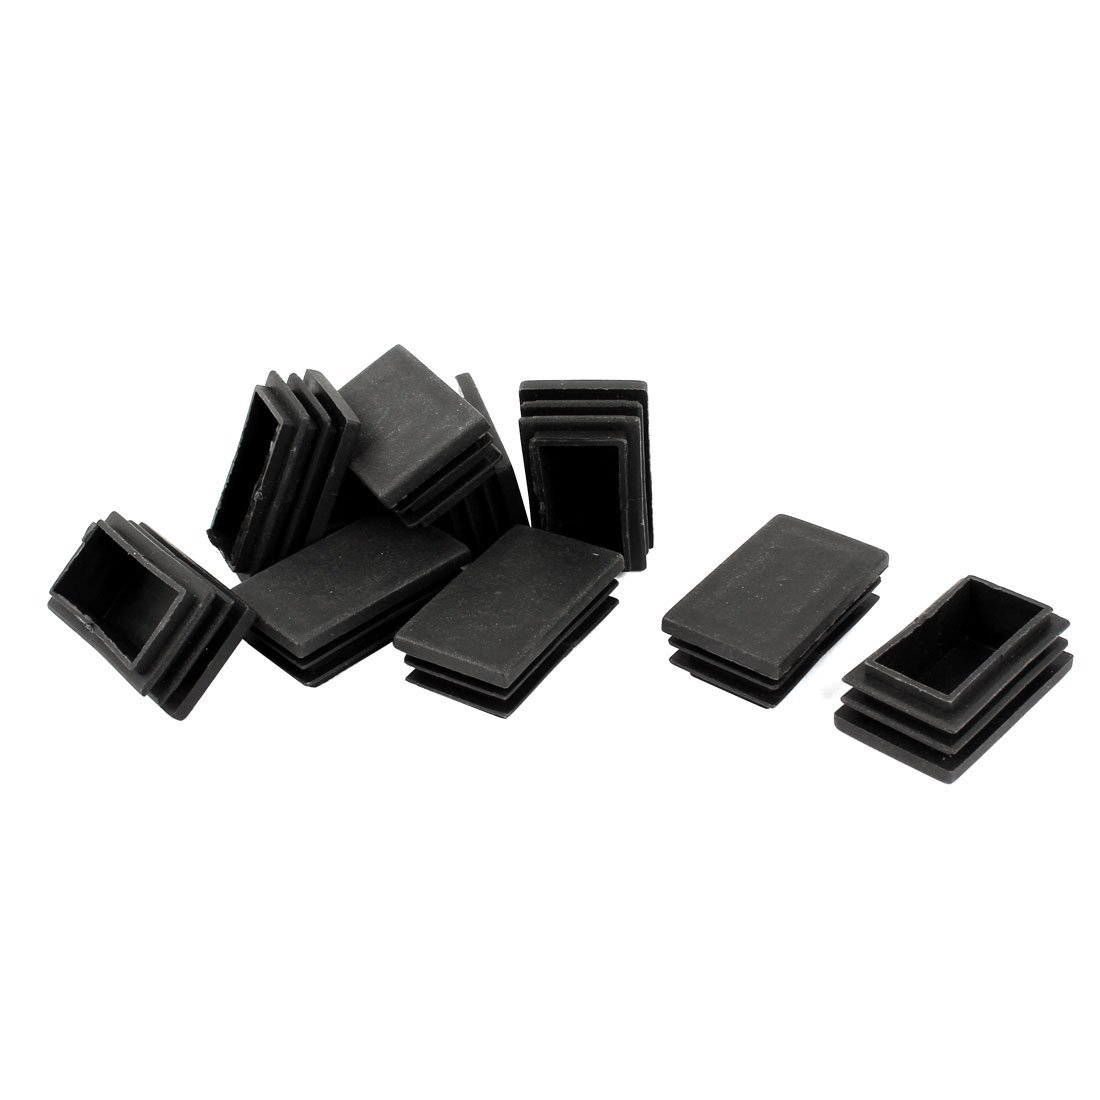 Plastic, Rectangular, With Cover End Pipe Plug 50 Mm X 30 Mm, 10 Pieces